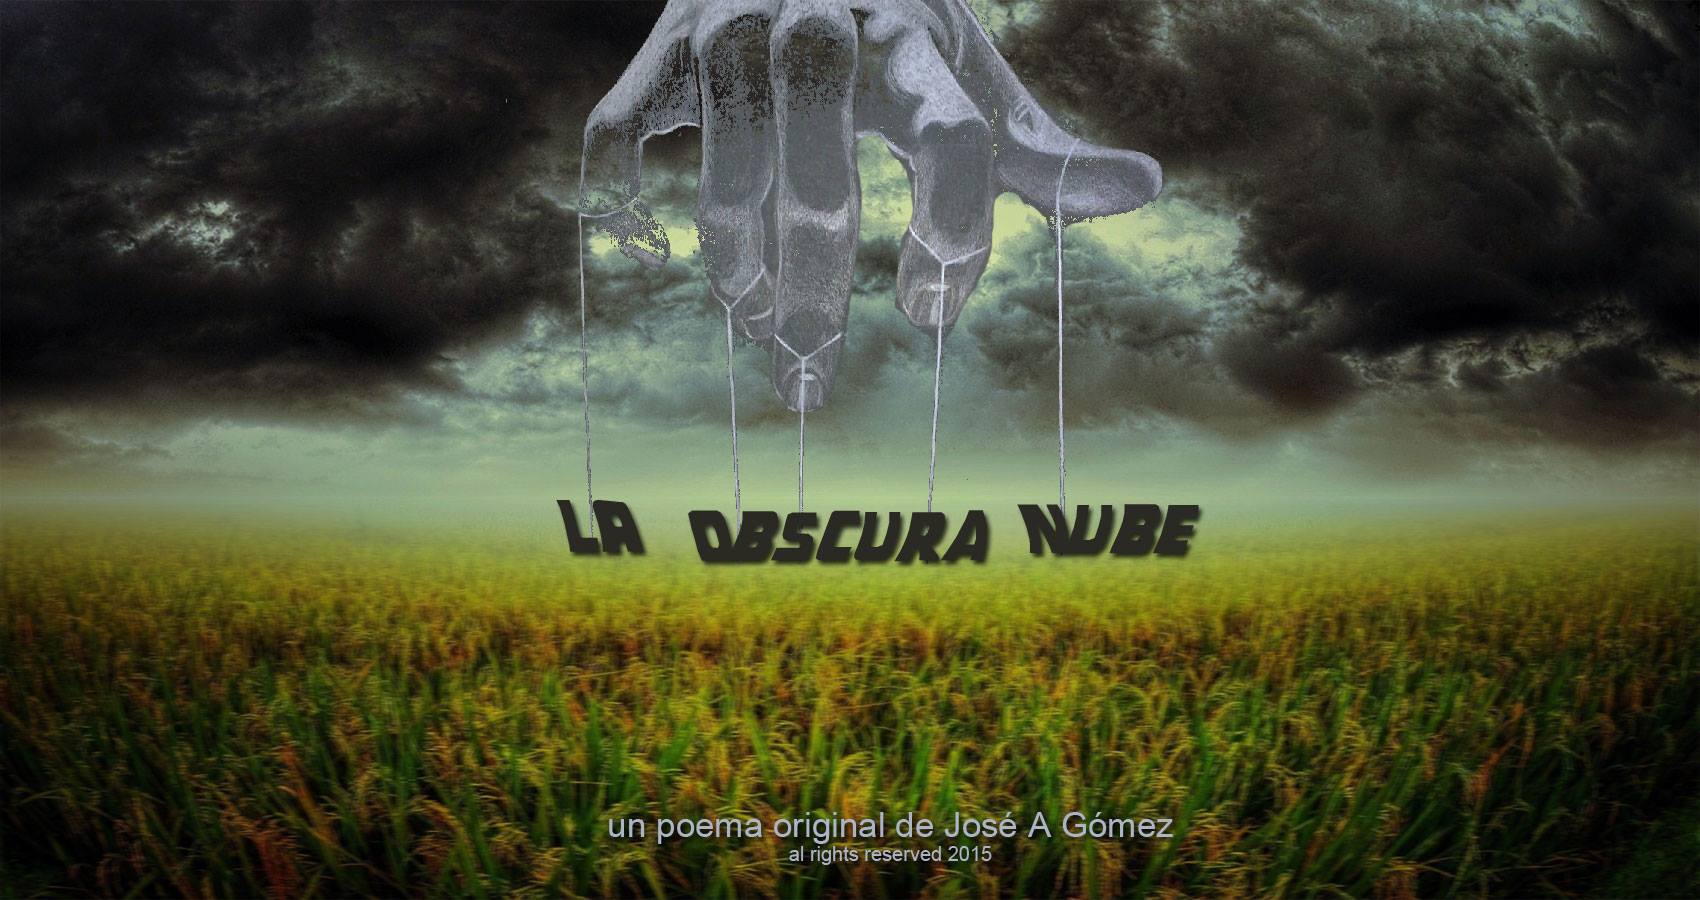 spillwords.com La Obscura Nube by Jose A Gomez